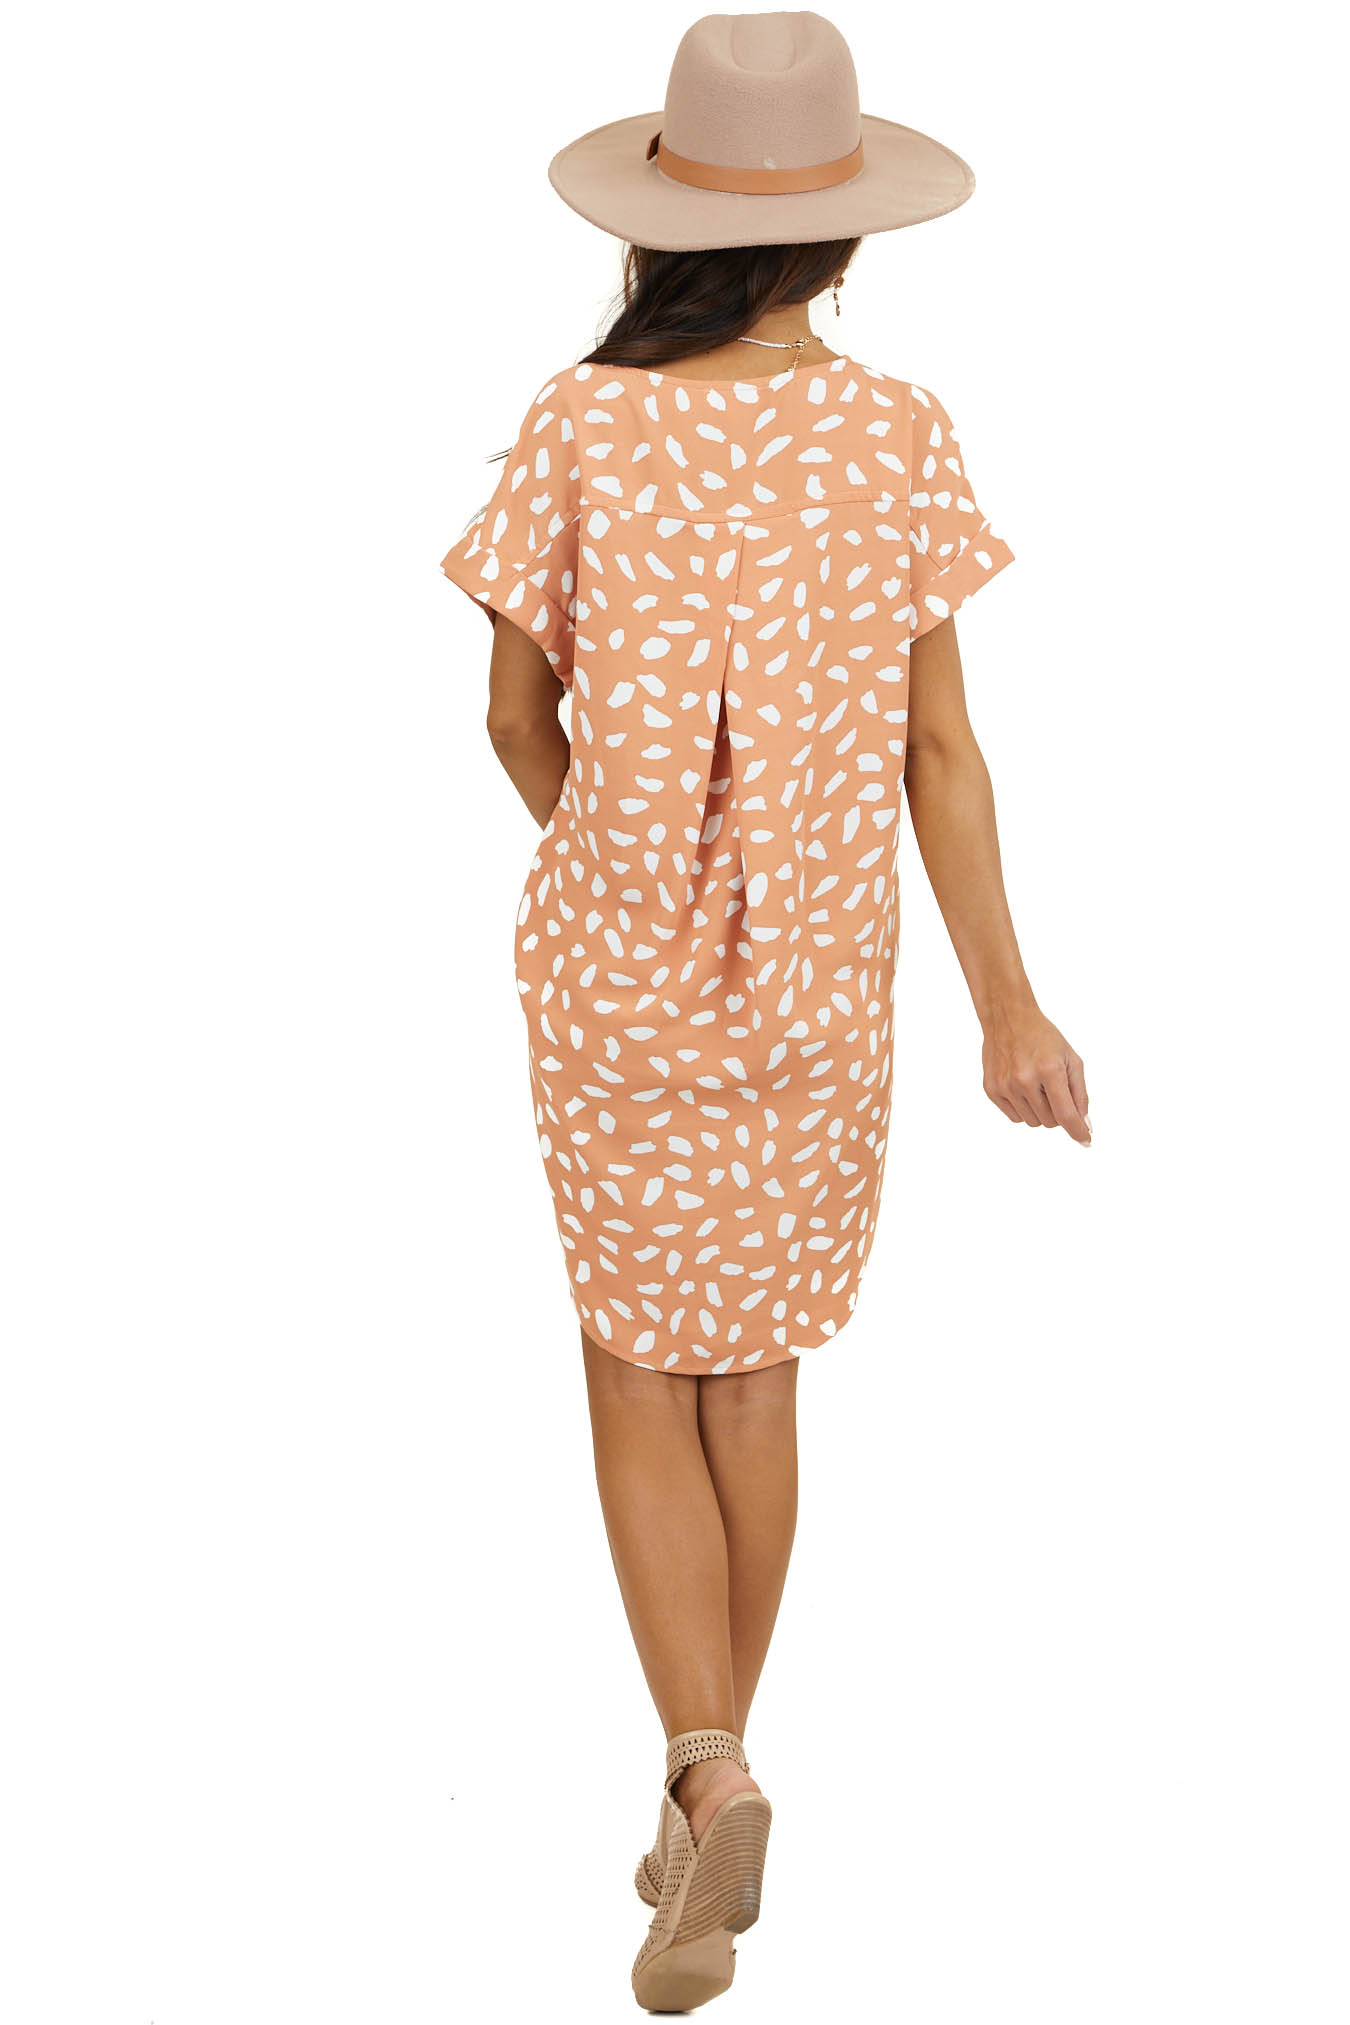 Peach Abstract Print Short Woven Dress with Short Sleeves